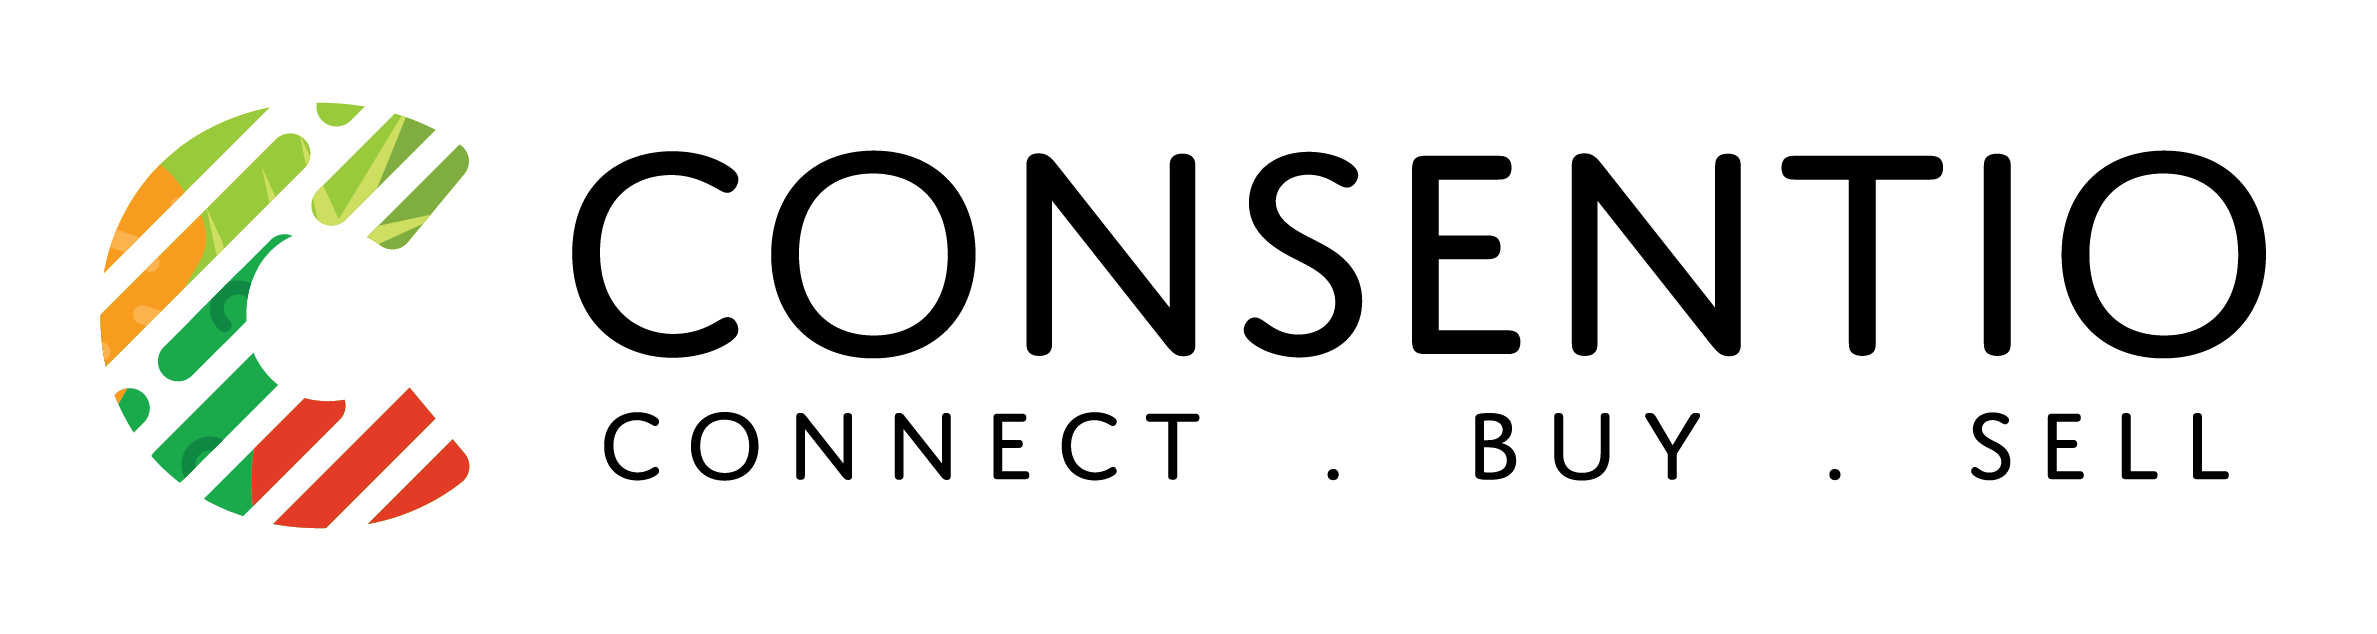 Consentio's logo for footer section